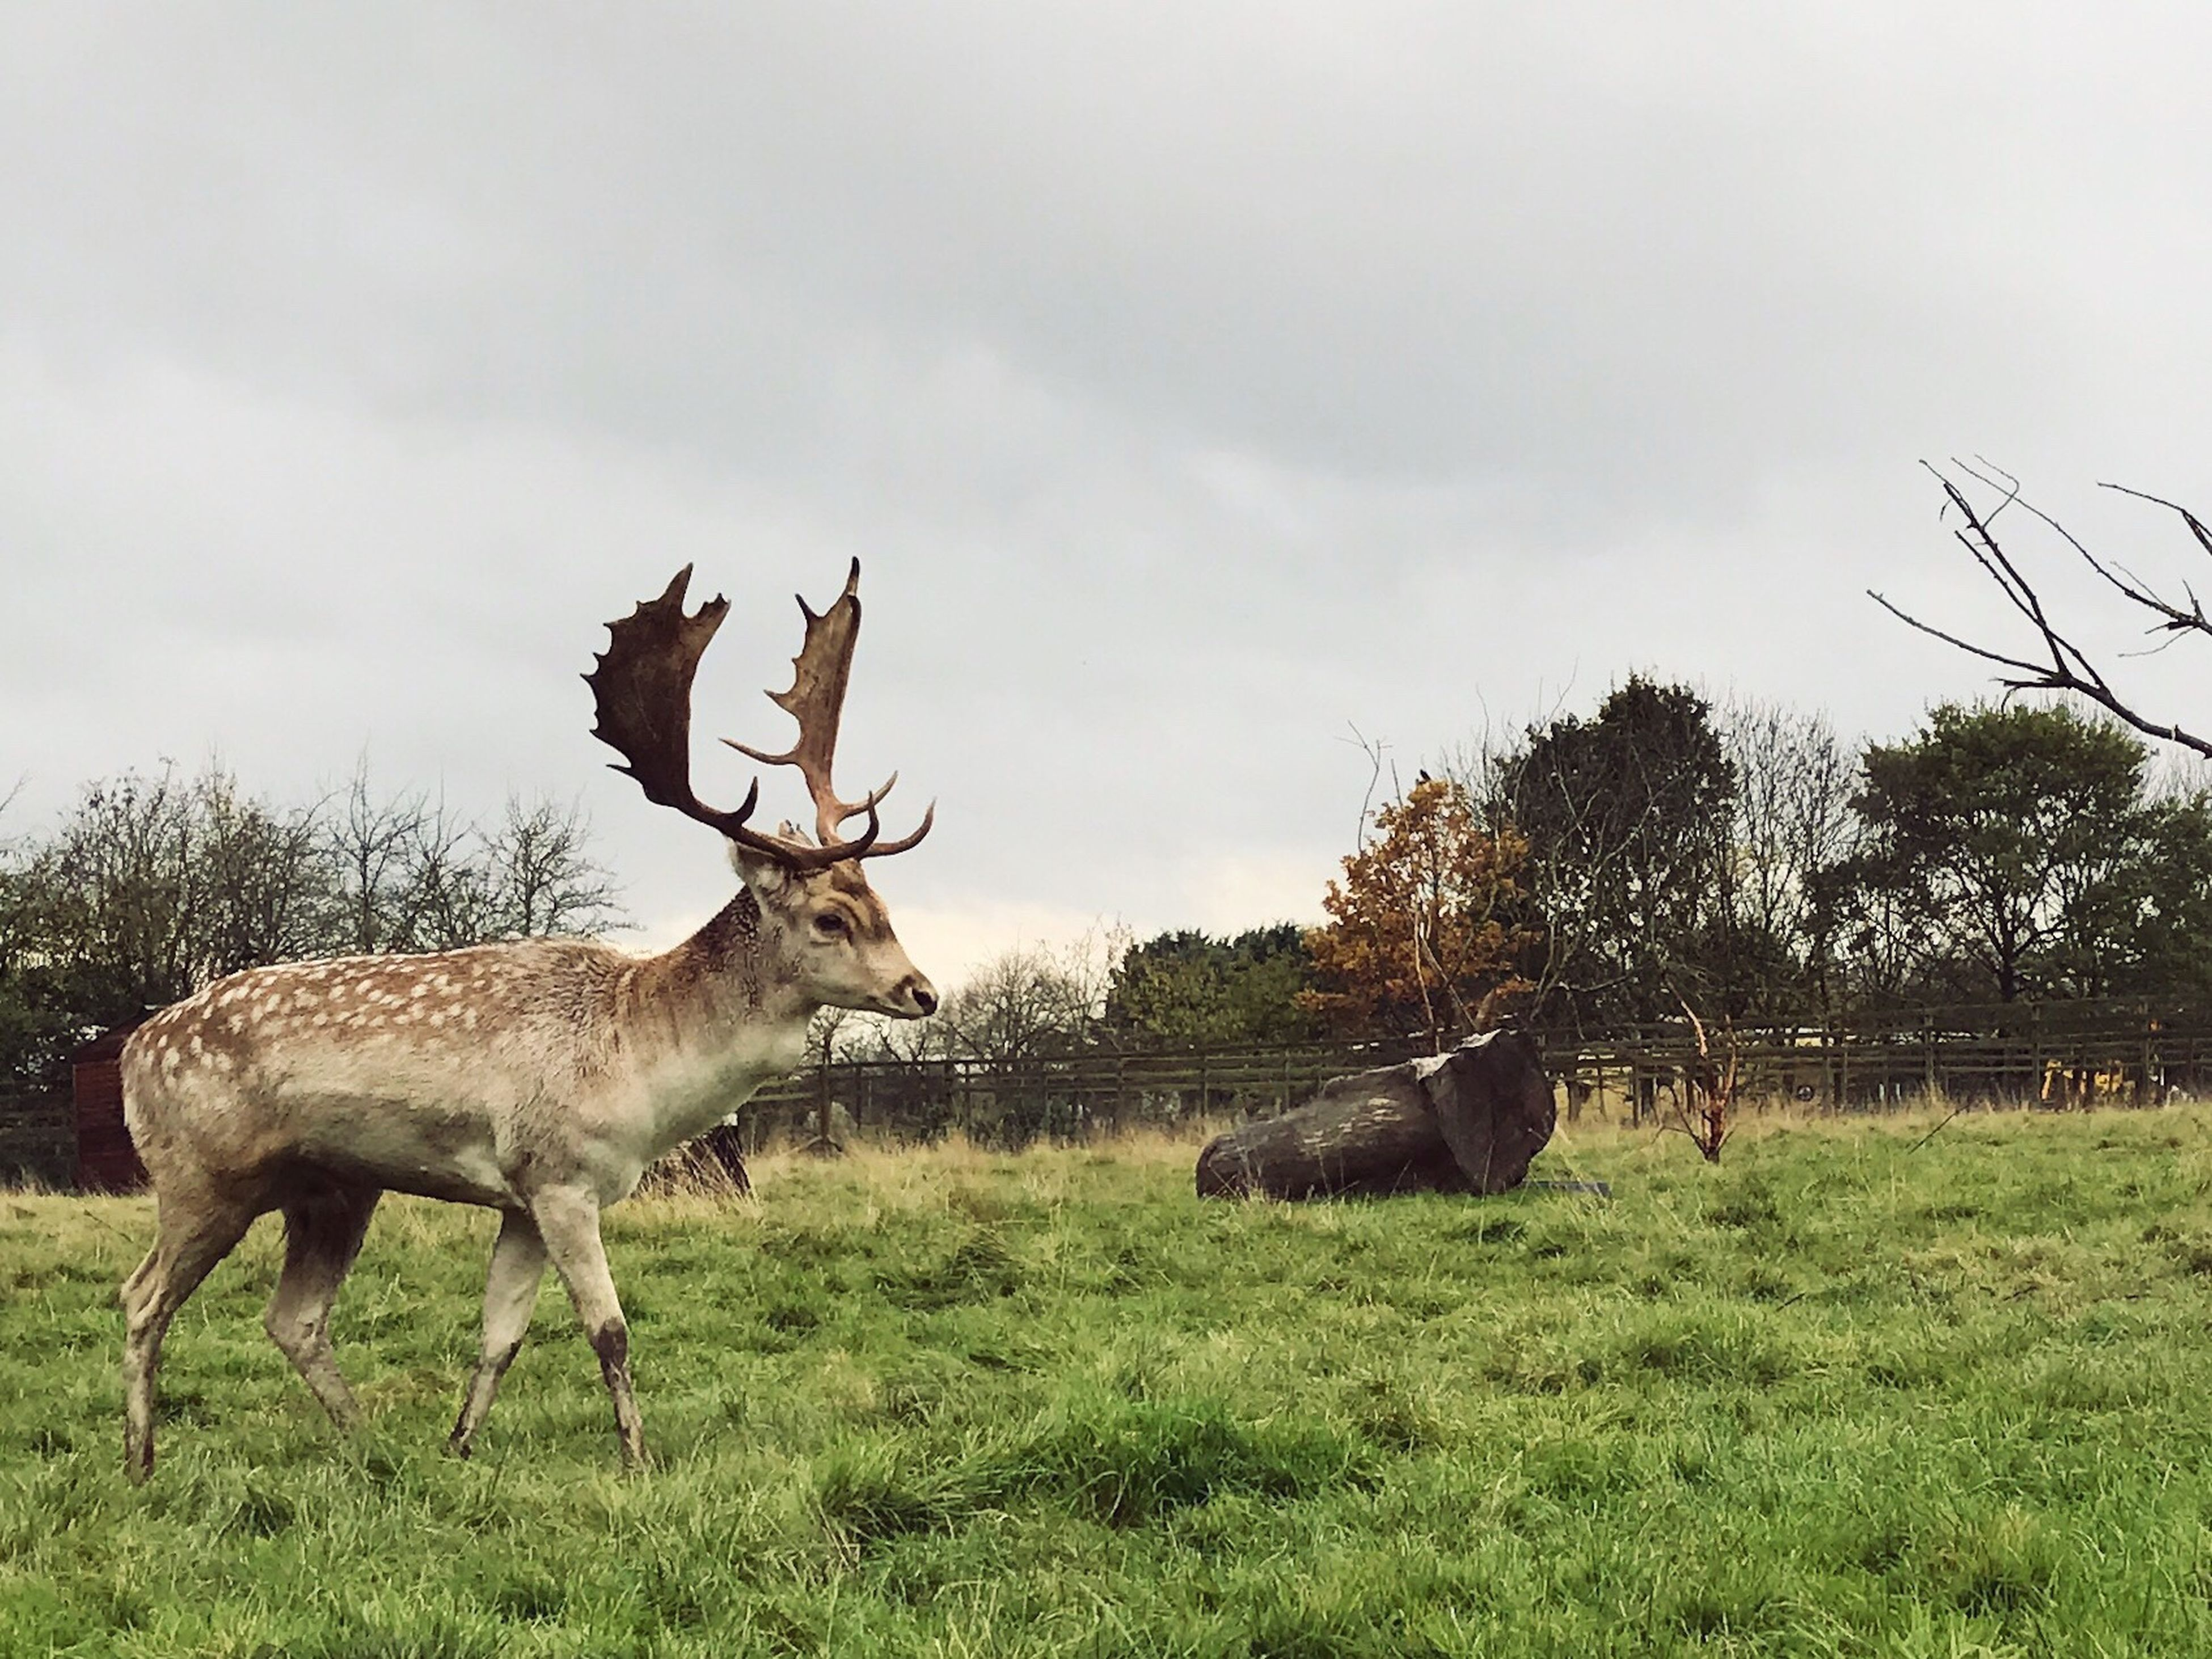 grass, animal themes, animals in the wild, antler, sky, no people, giraffe, field, deer, nature, tree, outdoors, mammal, animal wildlife, cloud - sky, reindeer, day, safari animals, stag, beauty in nature, landscape